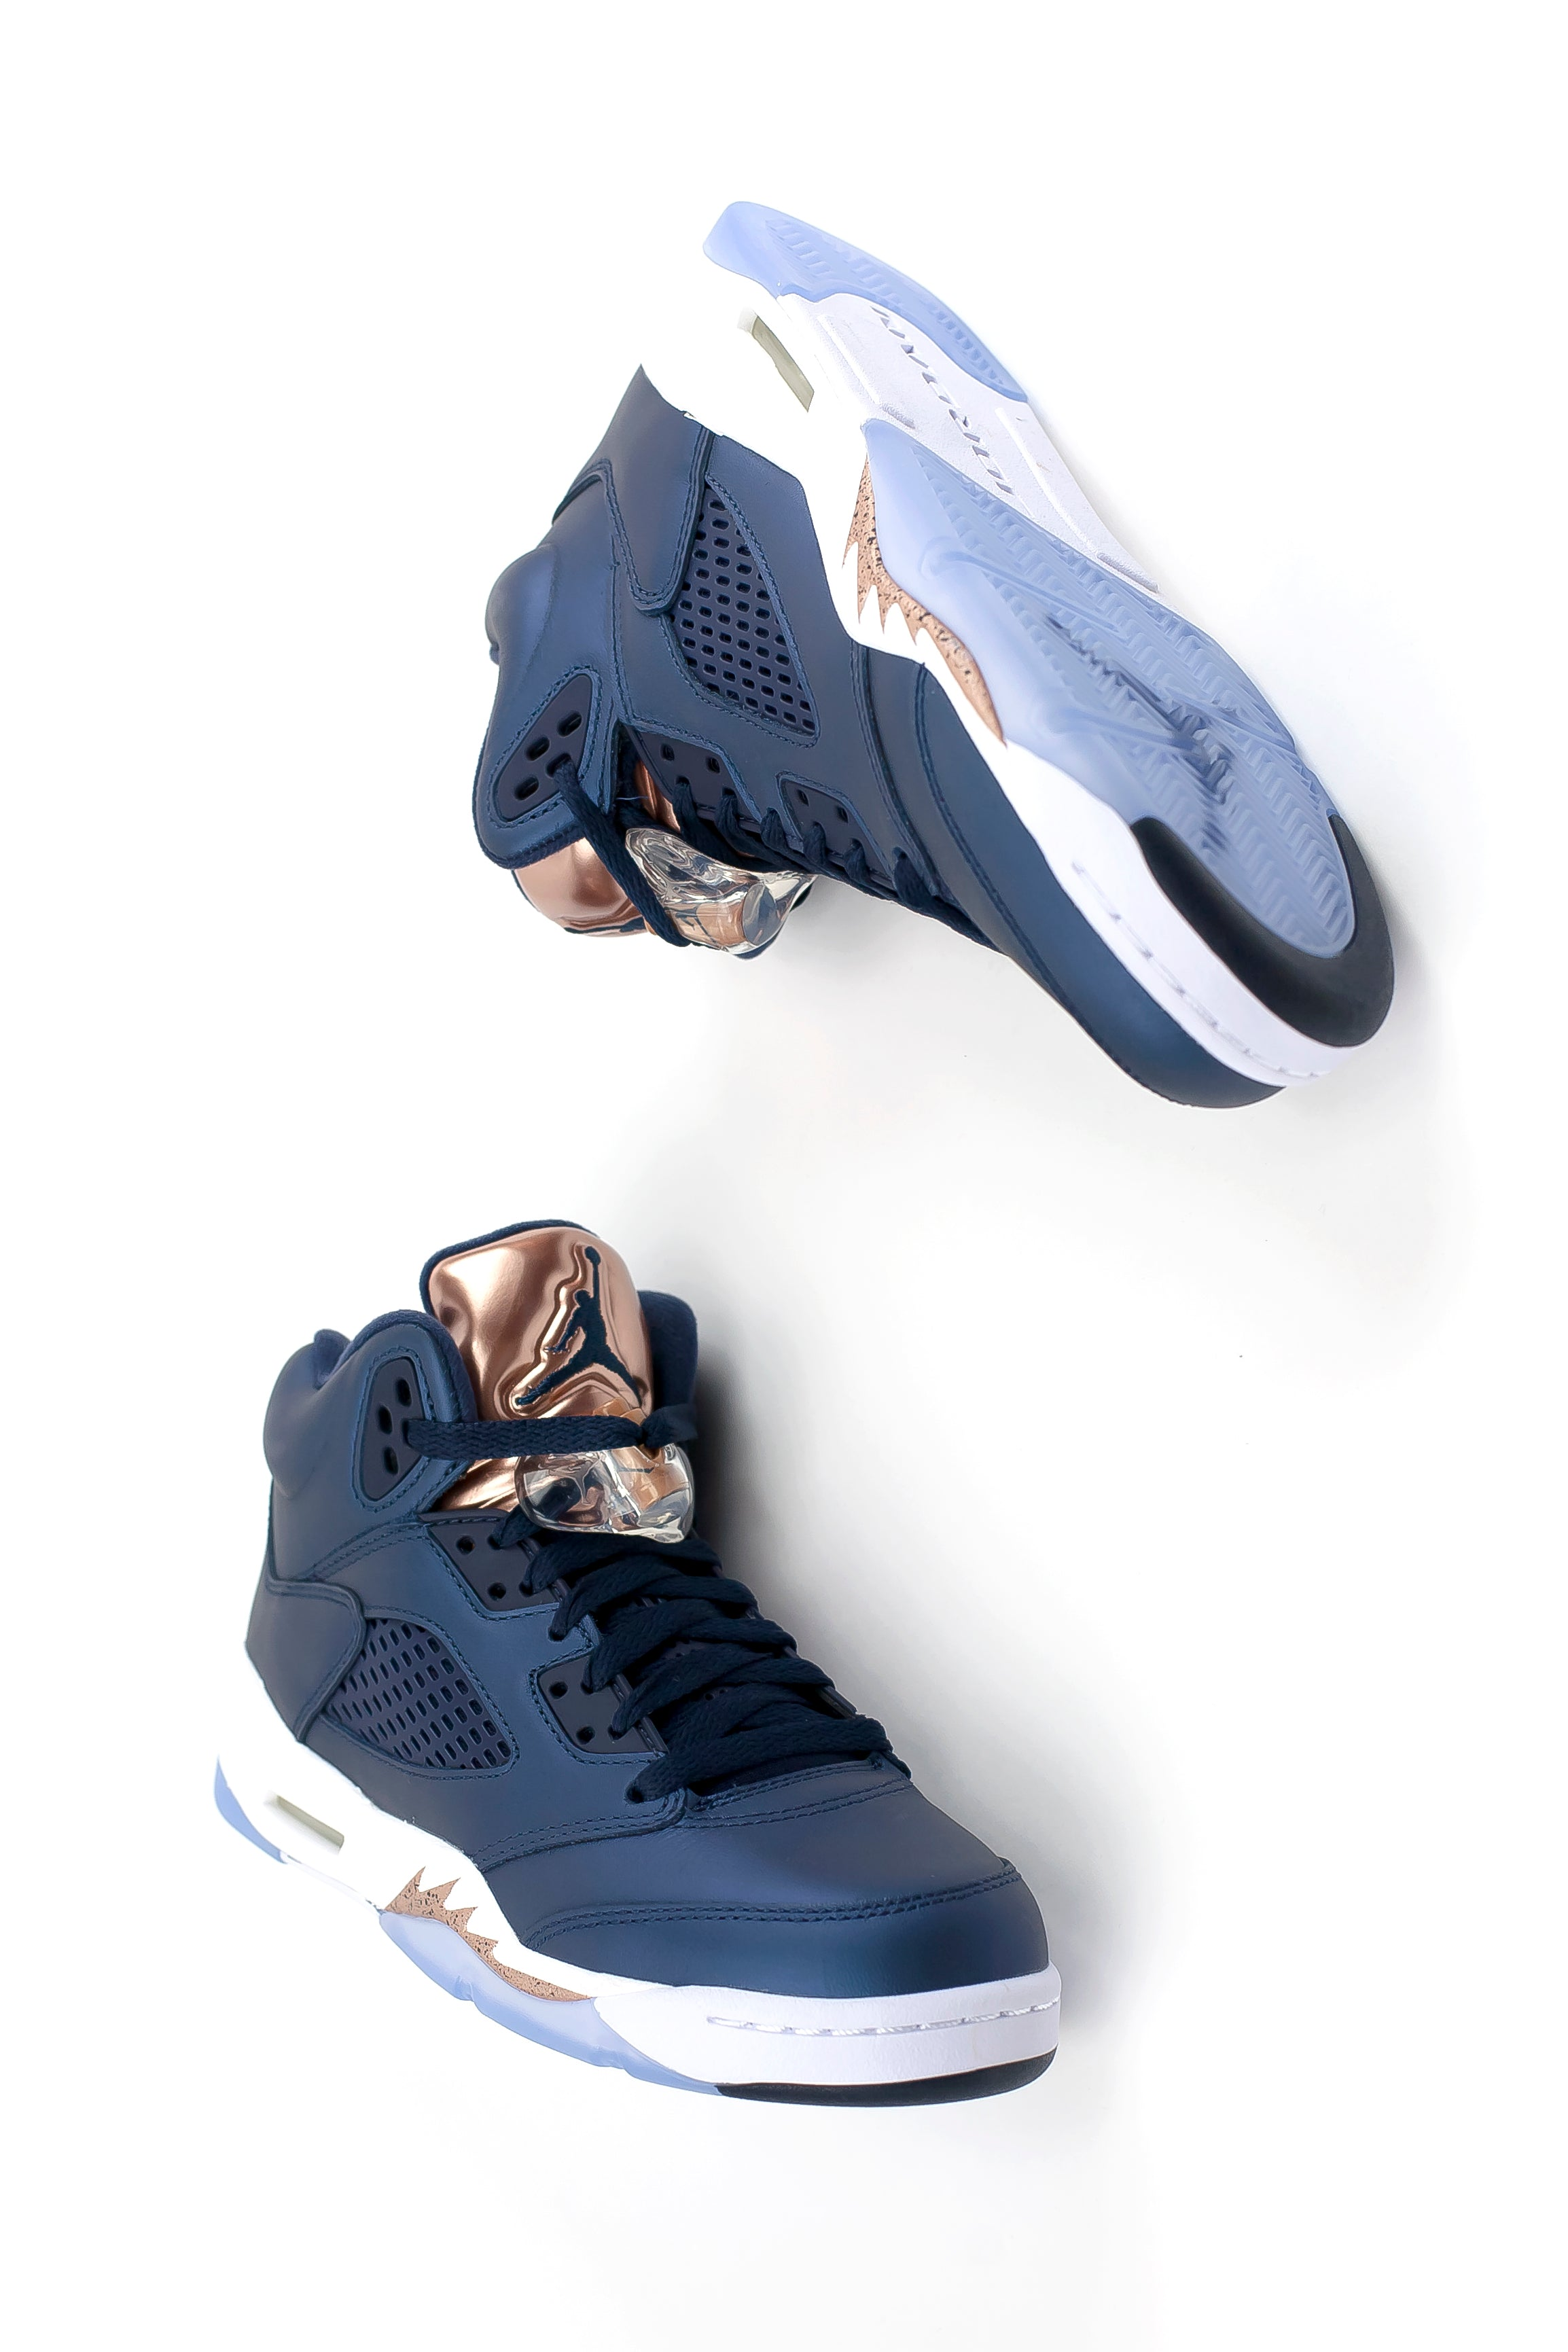 b3a8cfbff21e Only available in kid sizes browse our three locations and online stores to  pick up the Air Jordan 5 Retro